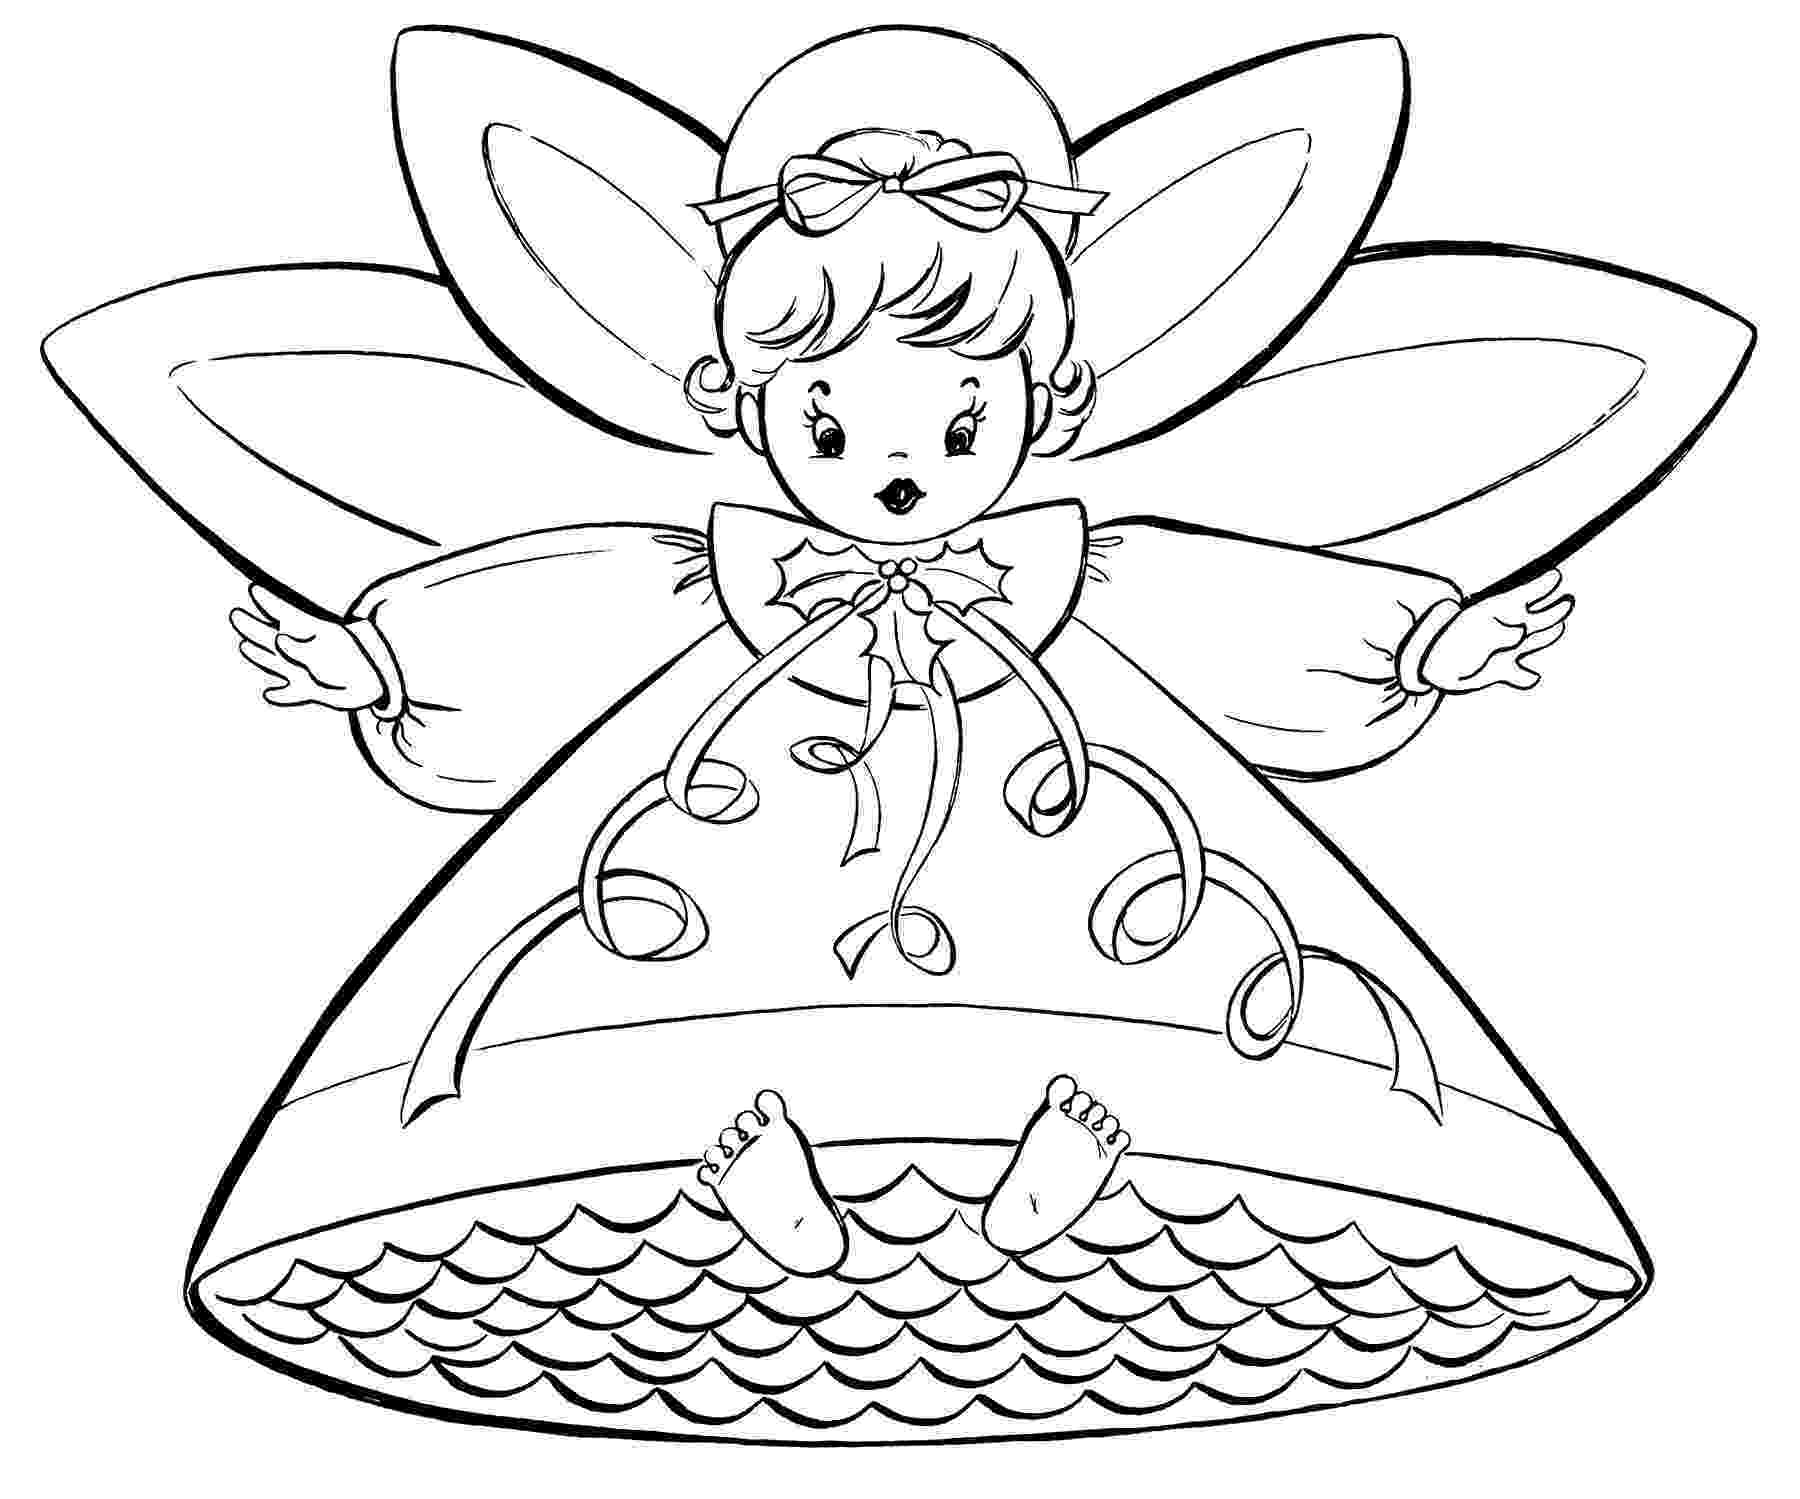 free coloring christmas pages free disney christmas printable coloring pages for kids coloring free pages christmas